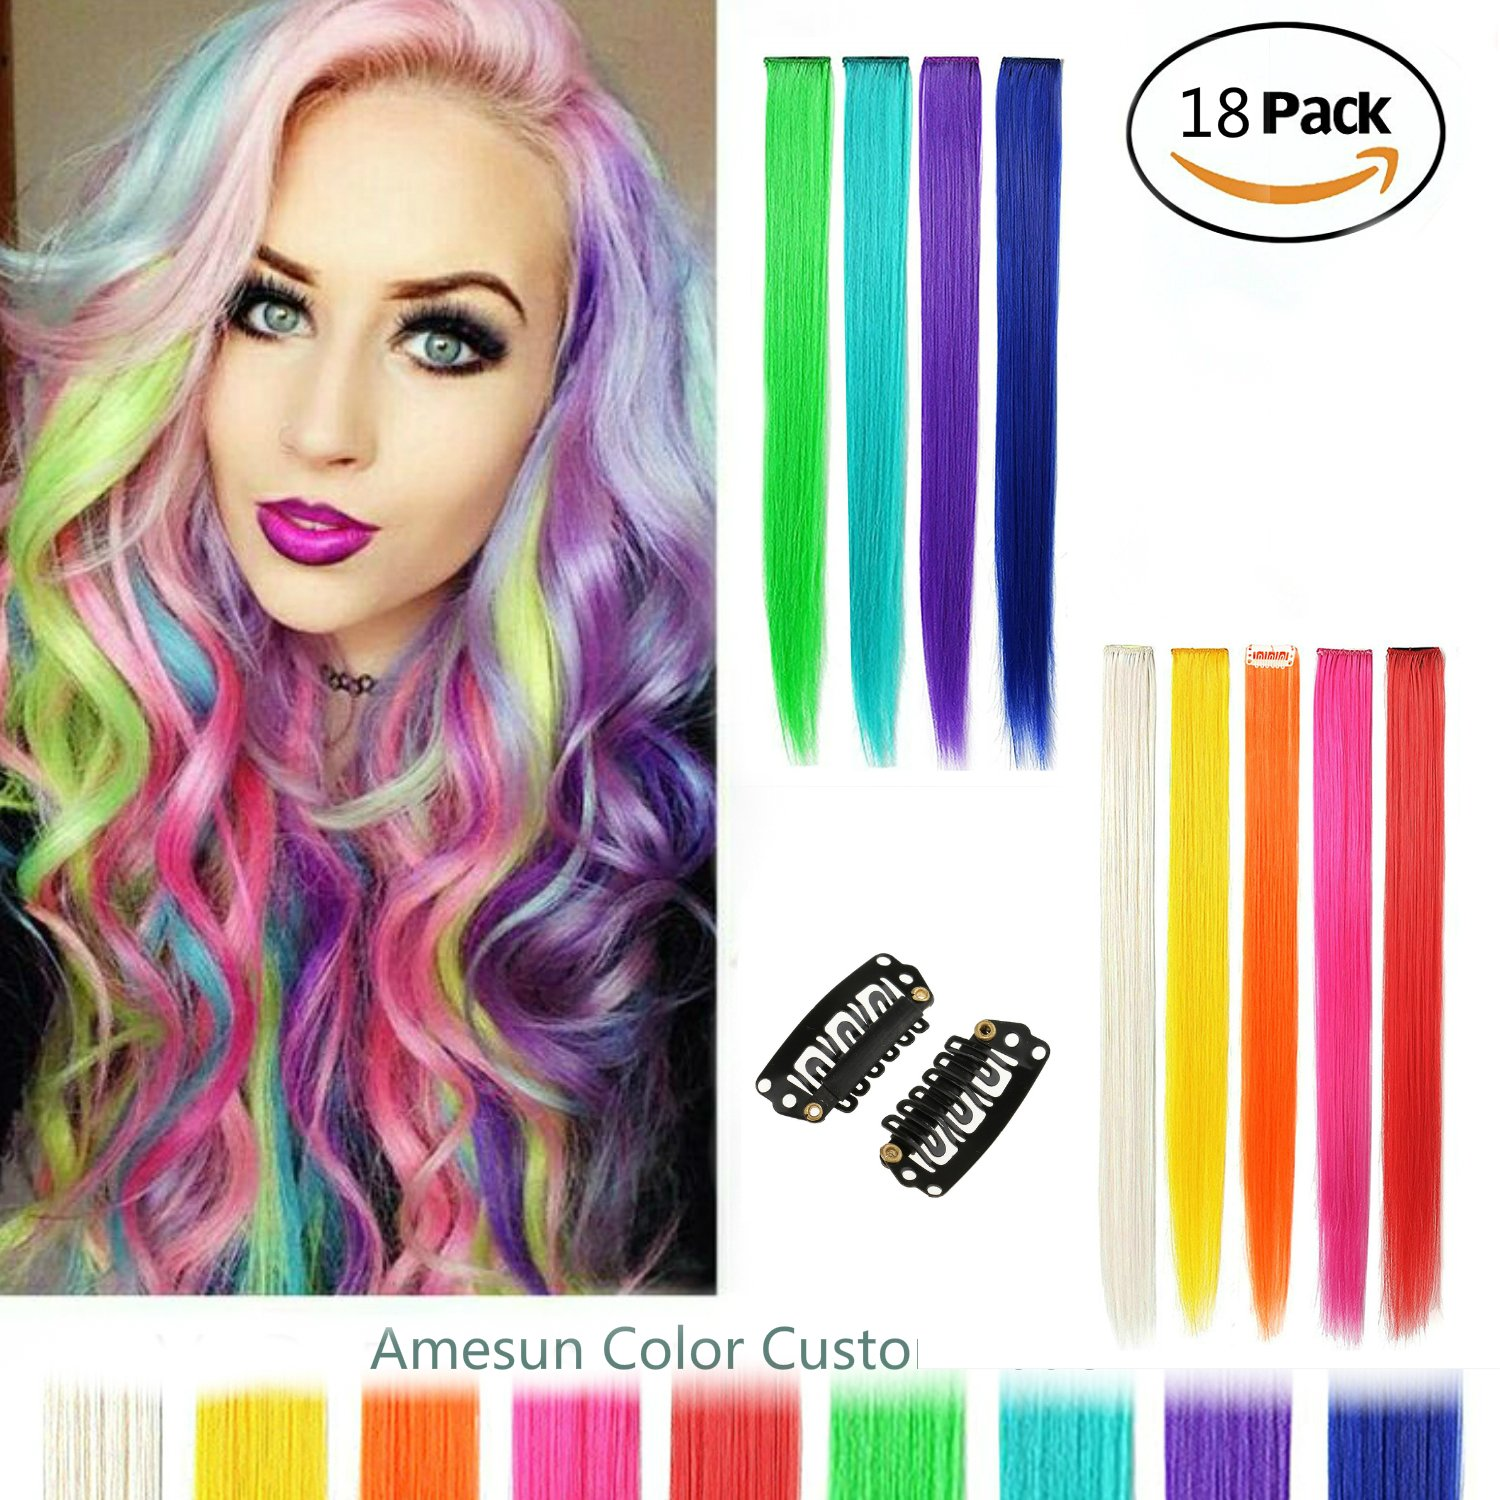 Amesun 18pcs 22inch Straight Colored Clip In On Synthetic Hair Extensions for Girls Party Multiple color (MUITIPLE)